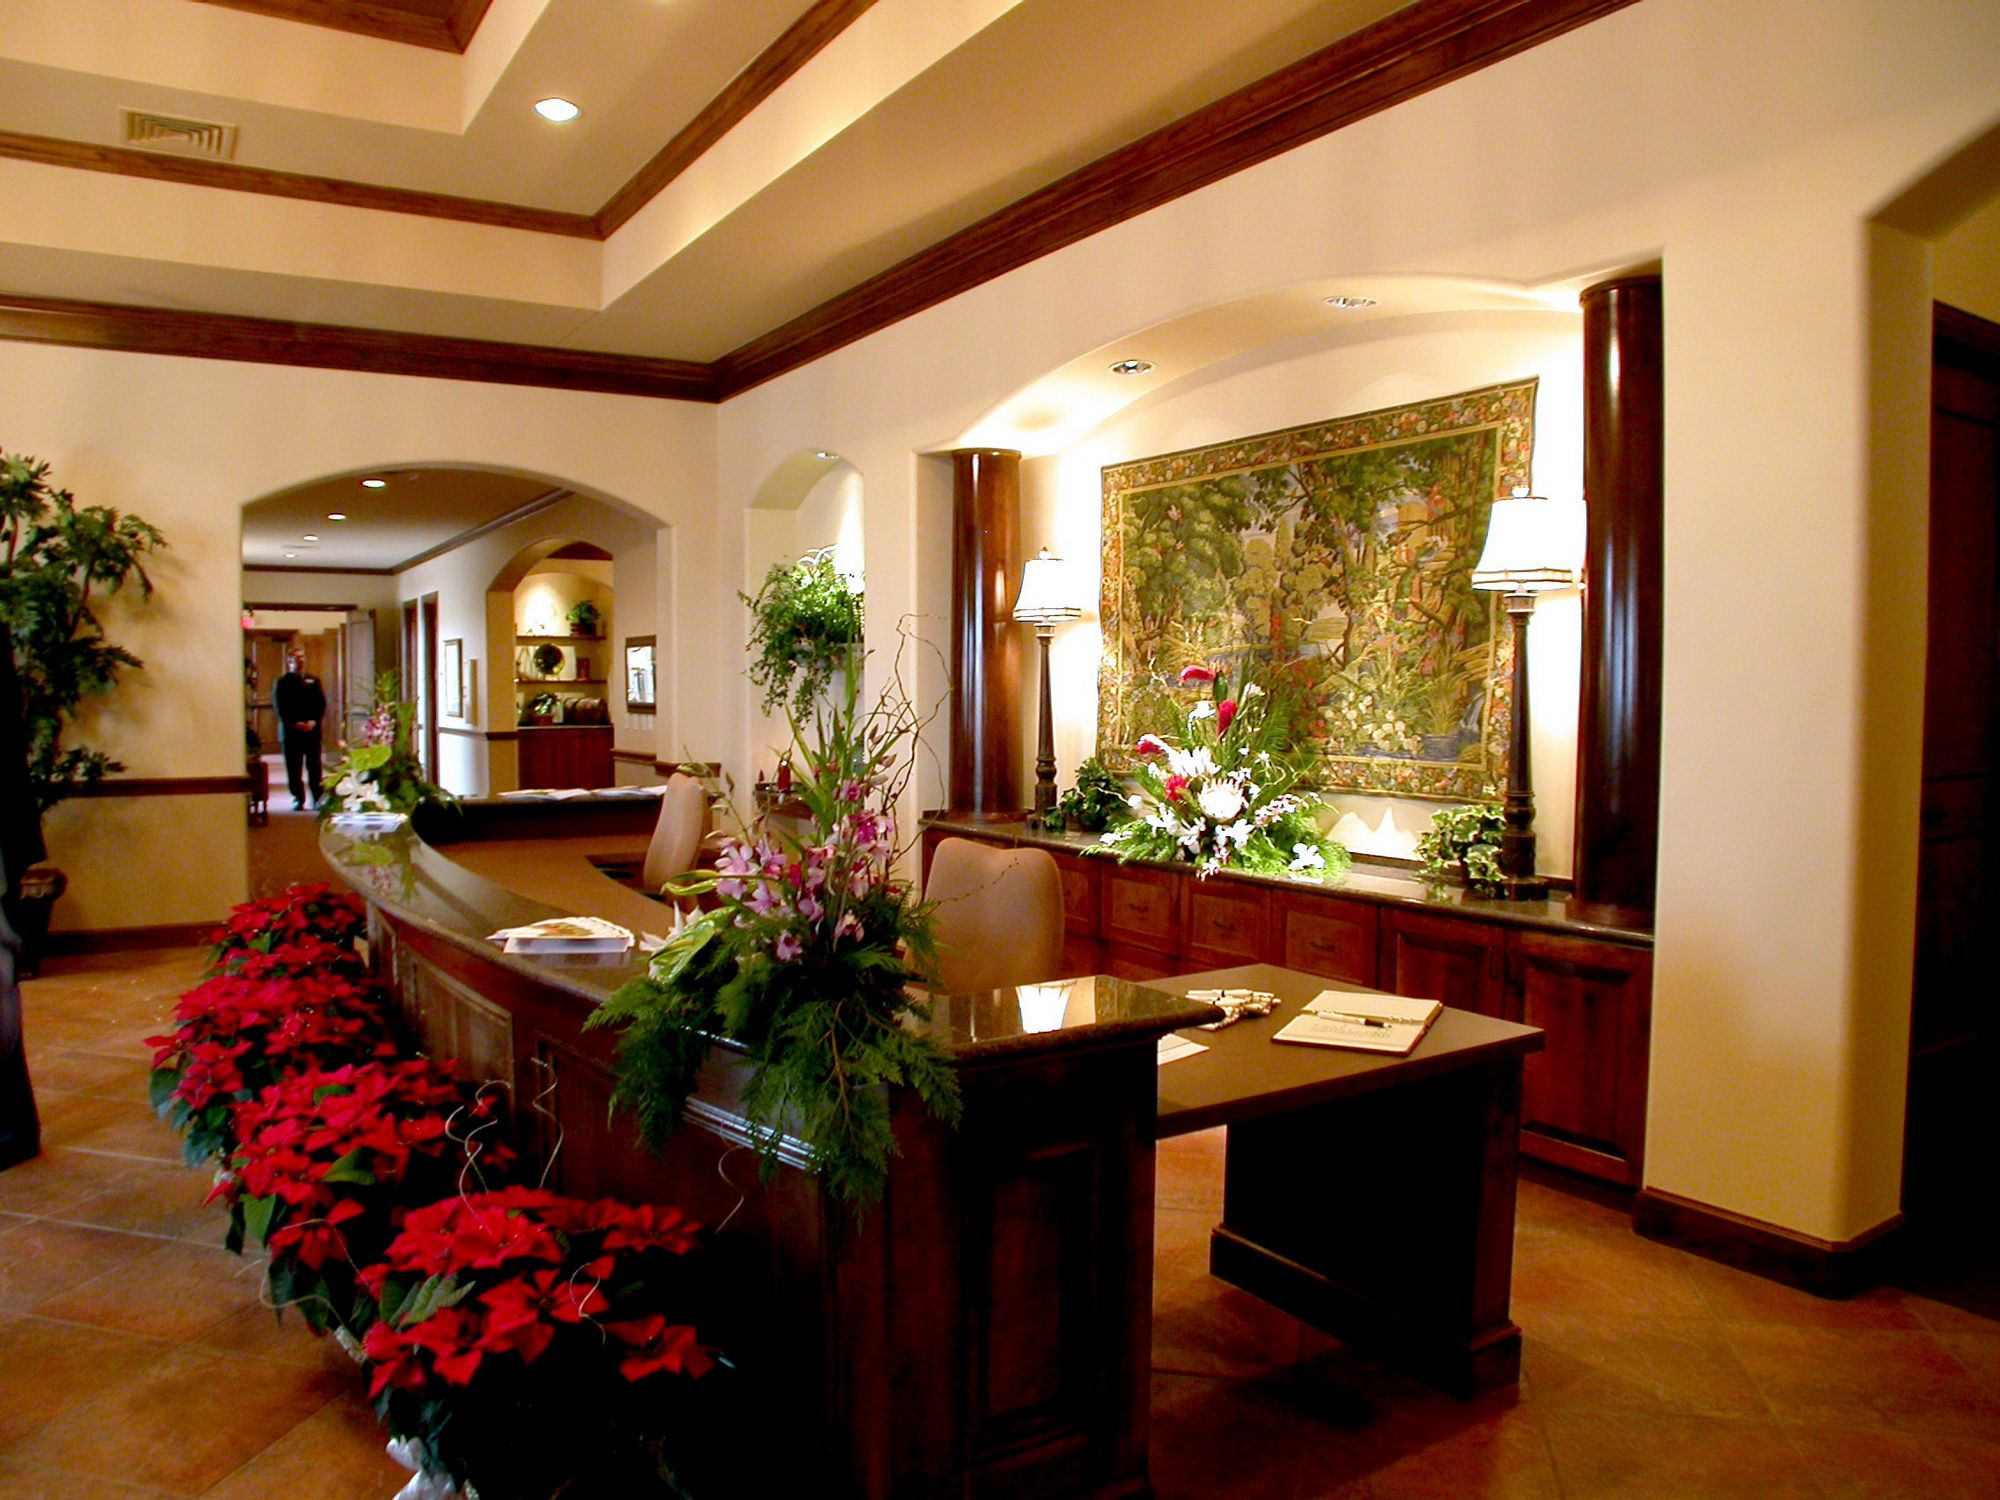 Jst Funeral Home Design | ... Reception Merchandise Room Interior Design  Provided By JST